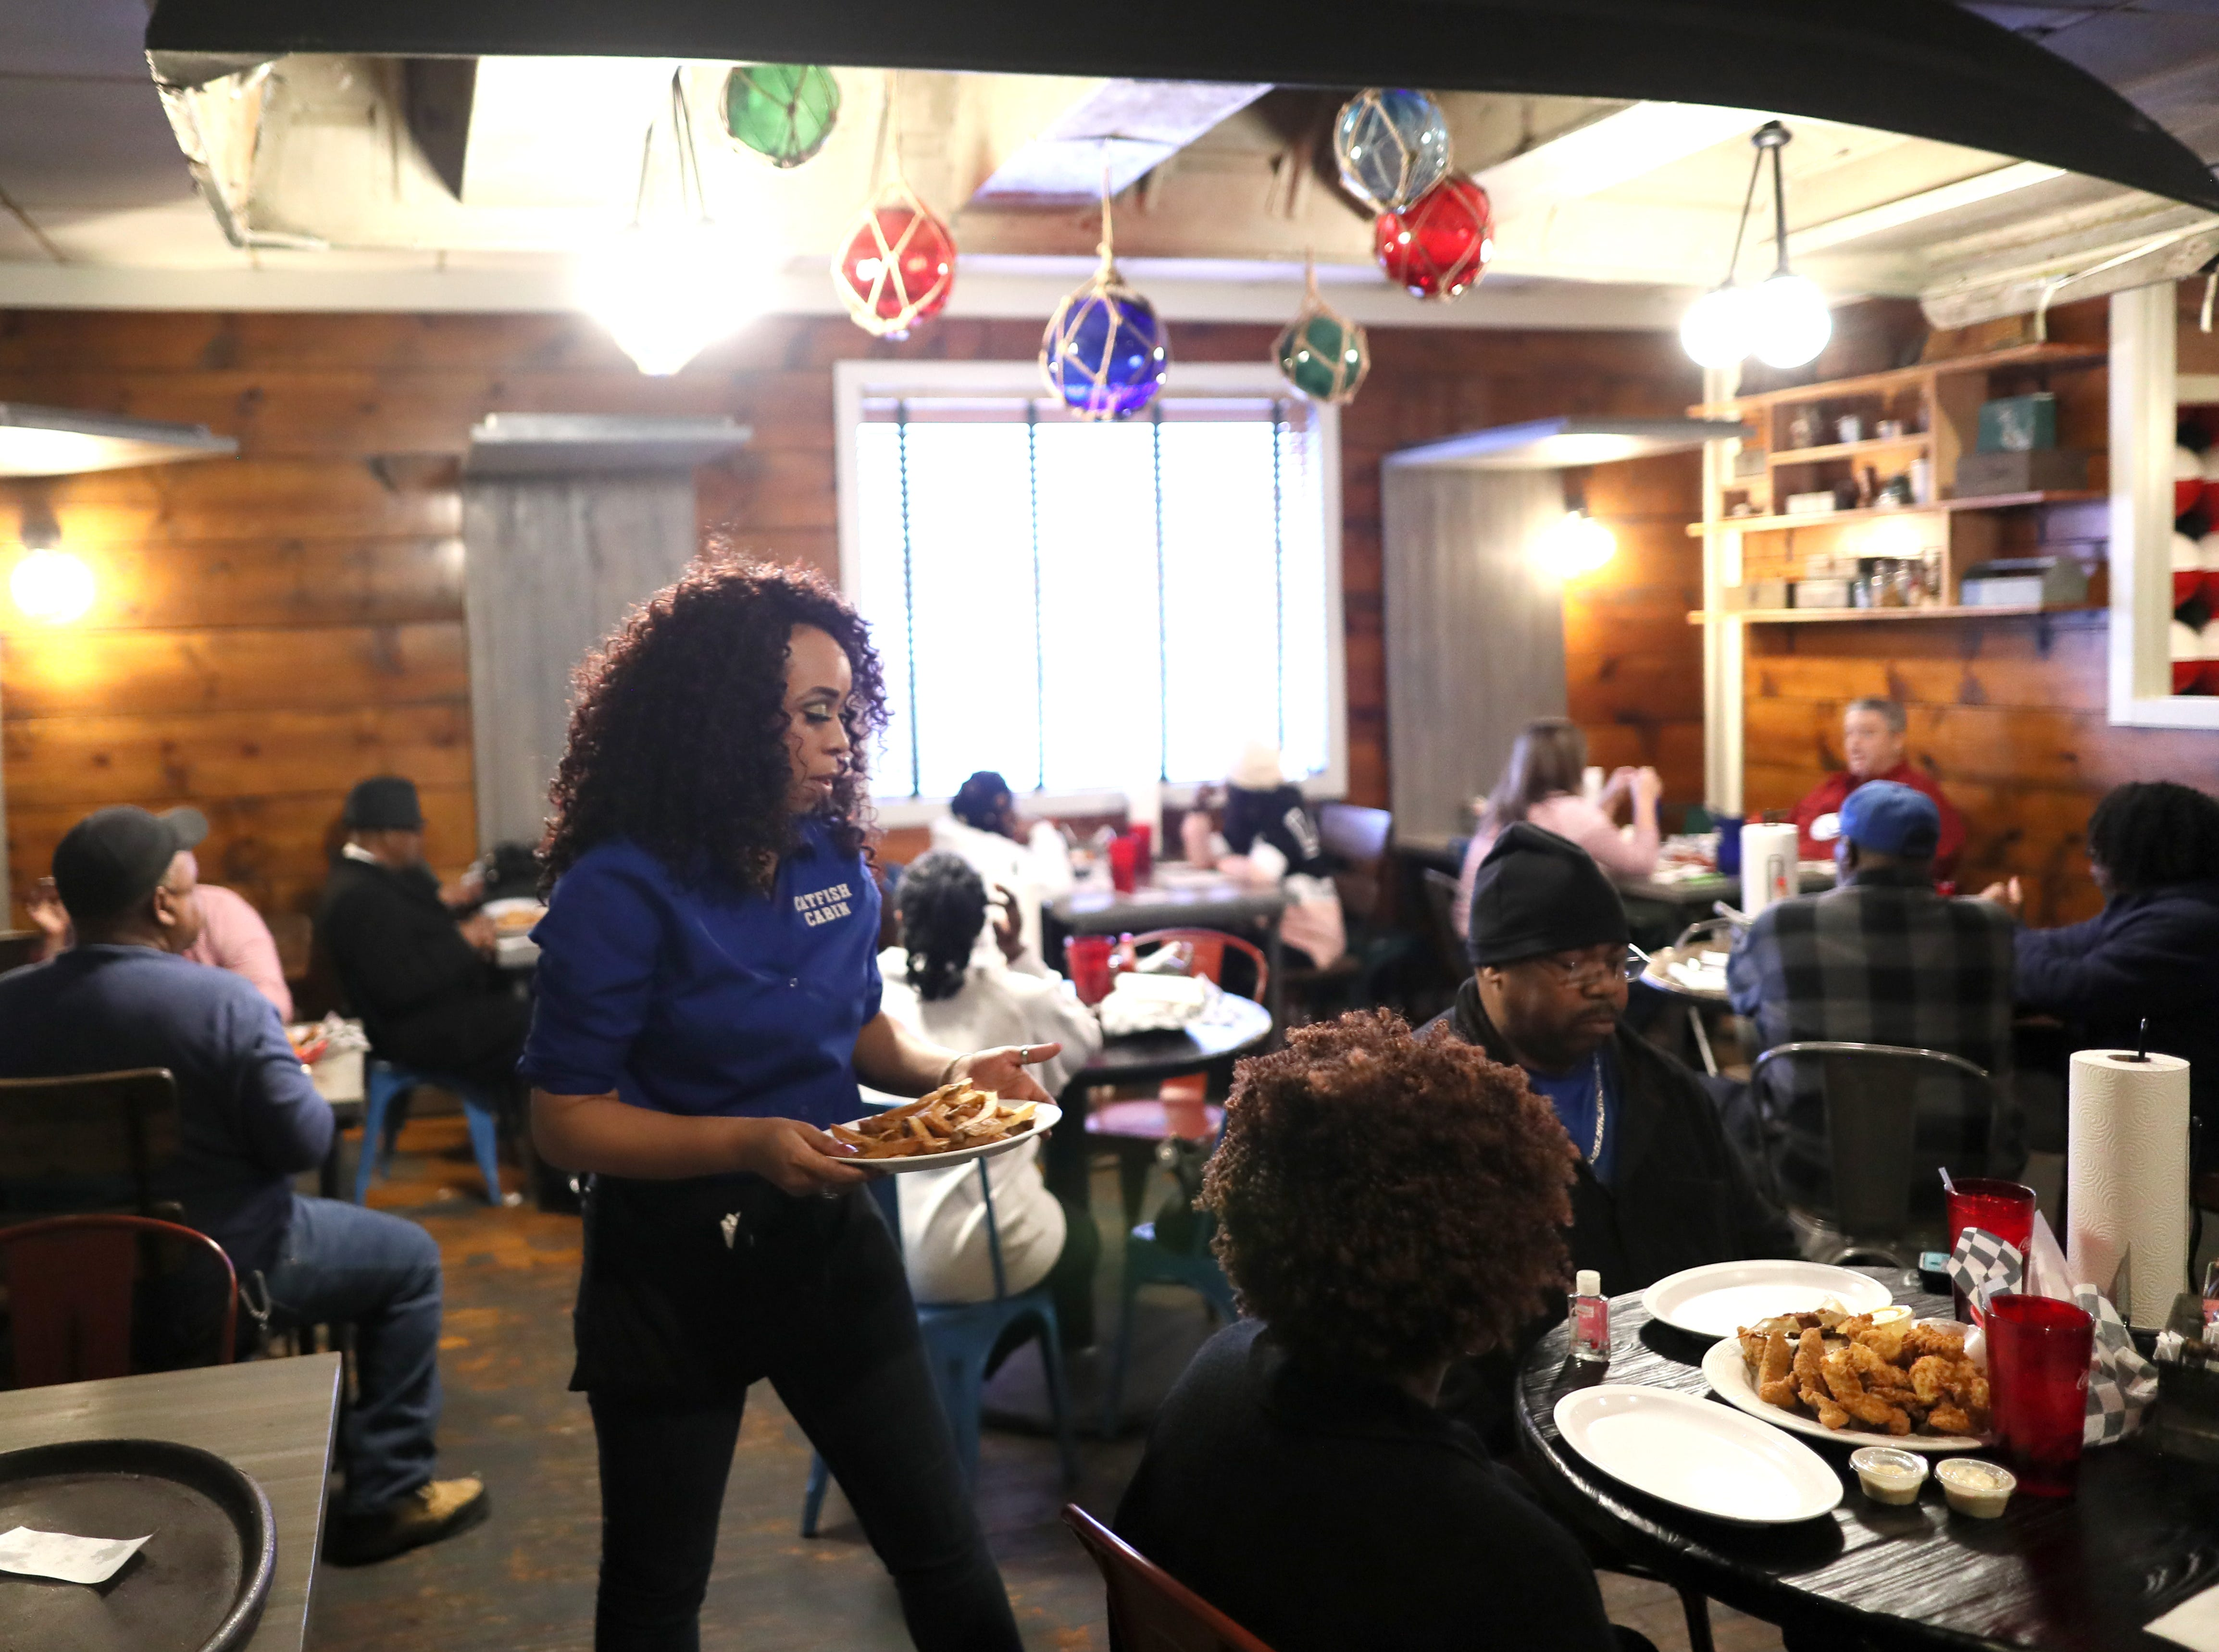 Customers sit for an early dinner on Friday at Catfish Cabin, which recently appeared on an episode of Gordon Ramsay's 24 Hours to Hell and Back television show.